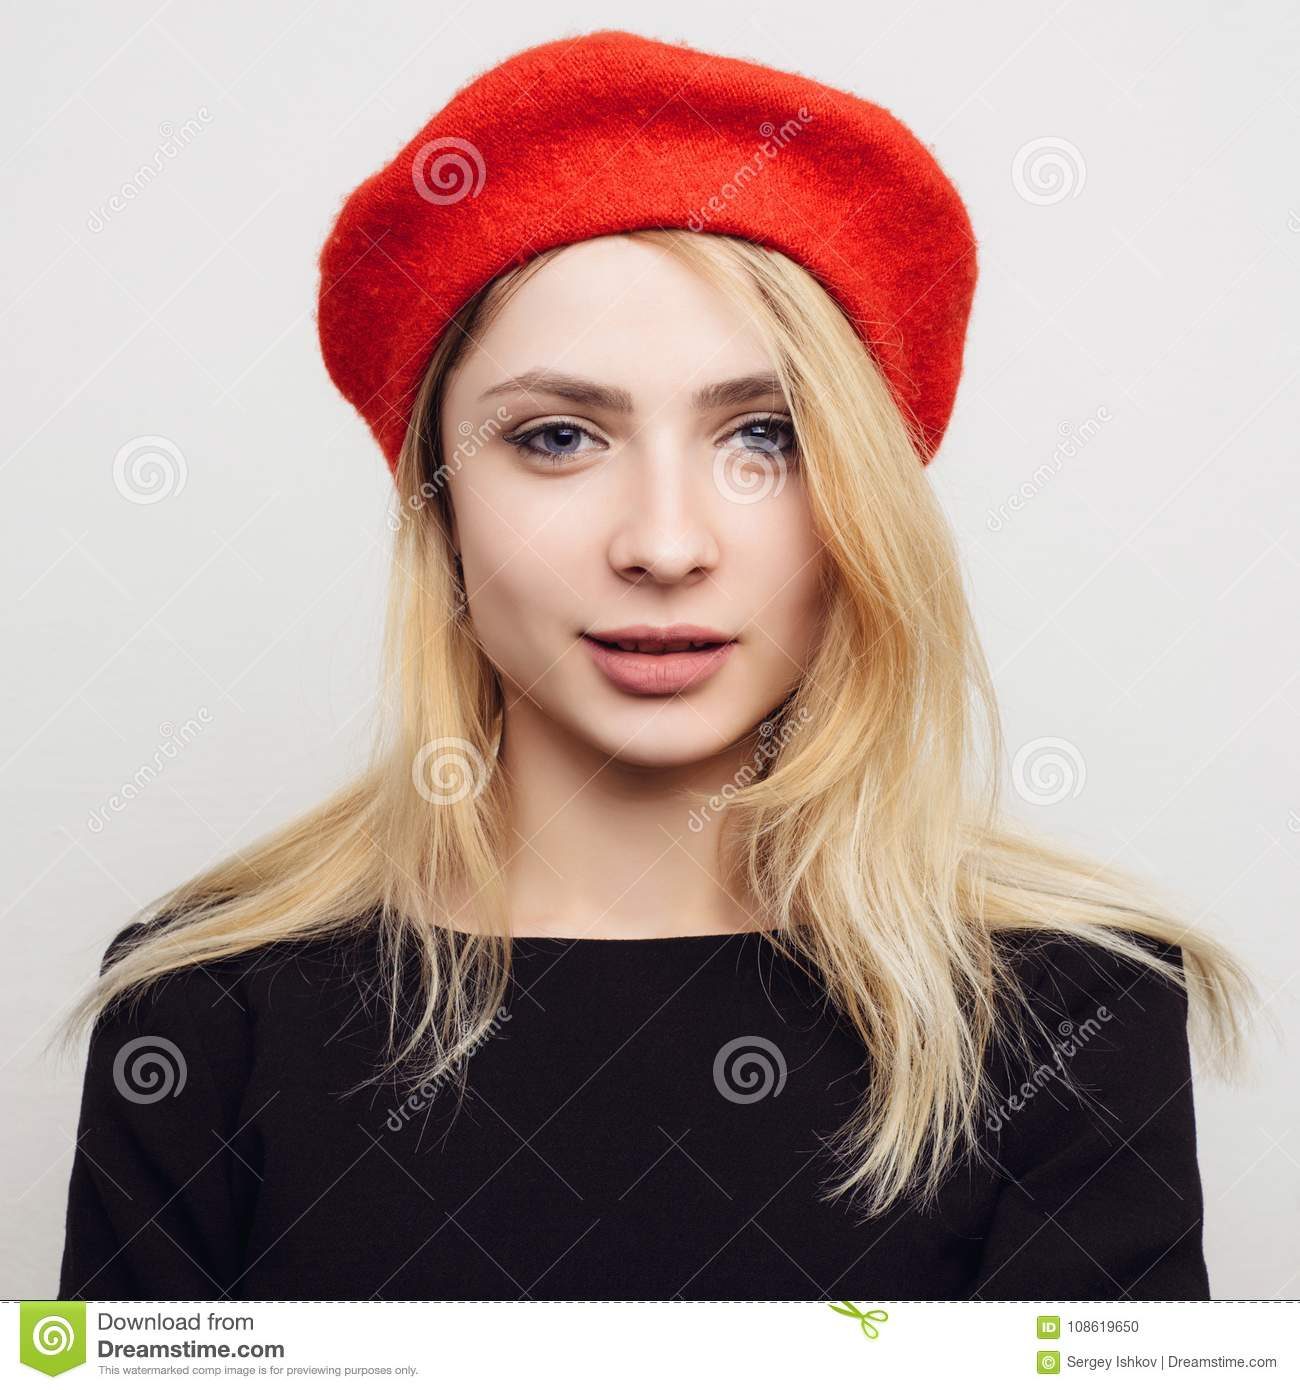 0494a345005 Portrait of a surprised young blond woman in a red beret on a white  background.